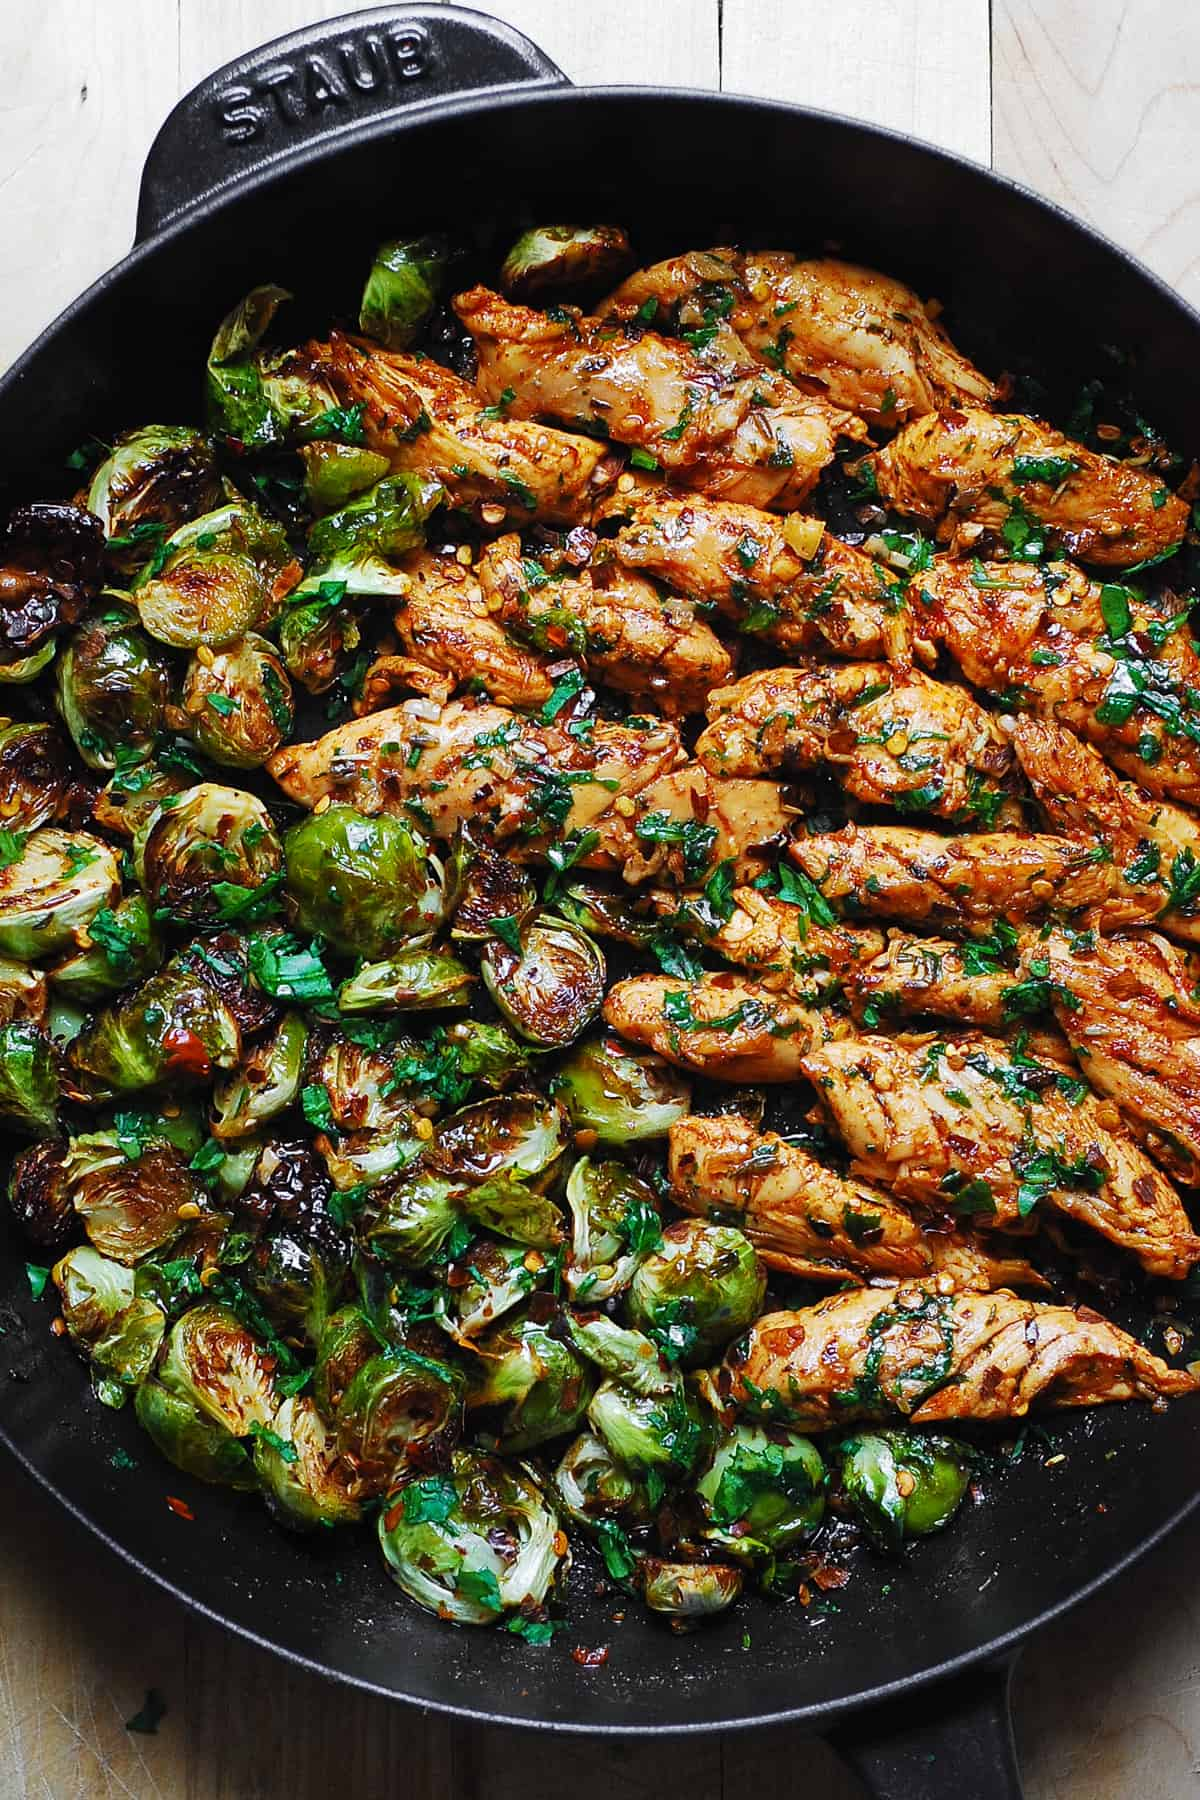 lemon garlic butter chicken and Brussels sprouts in a cast-iron skillet